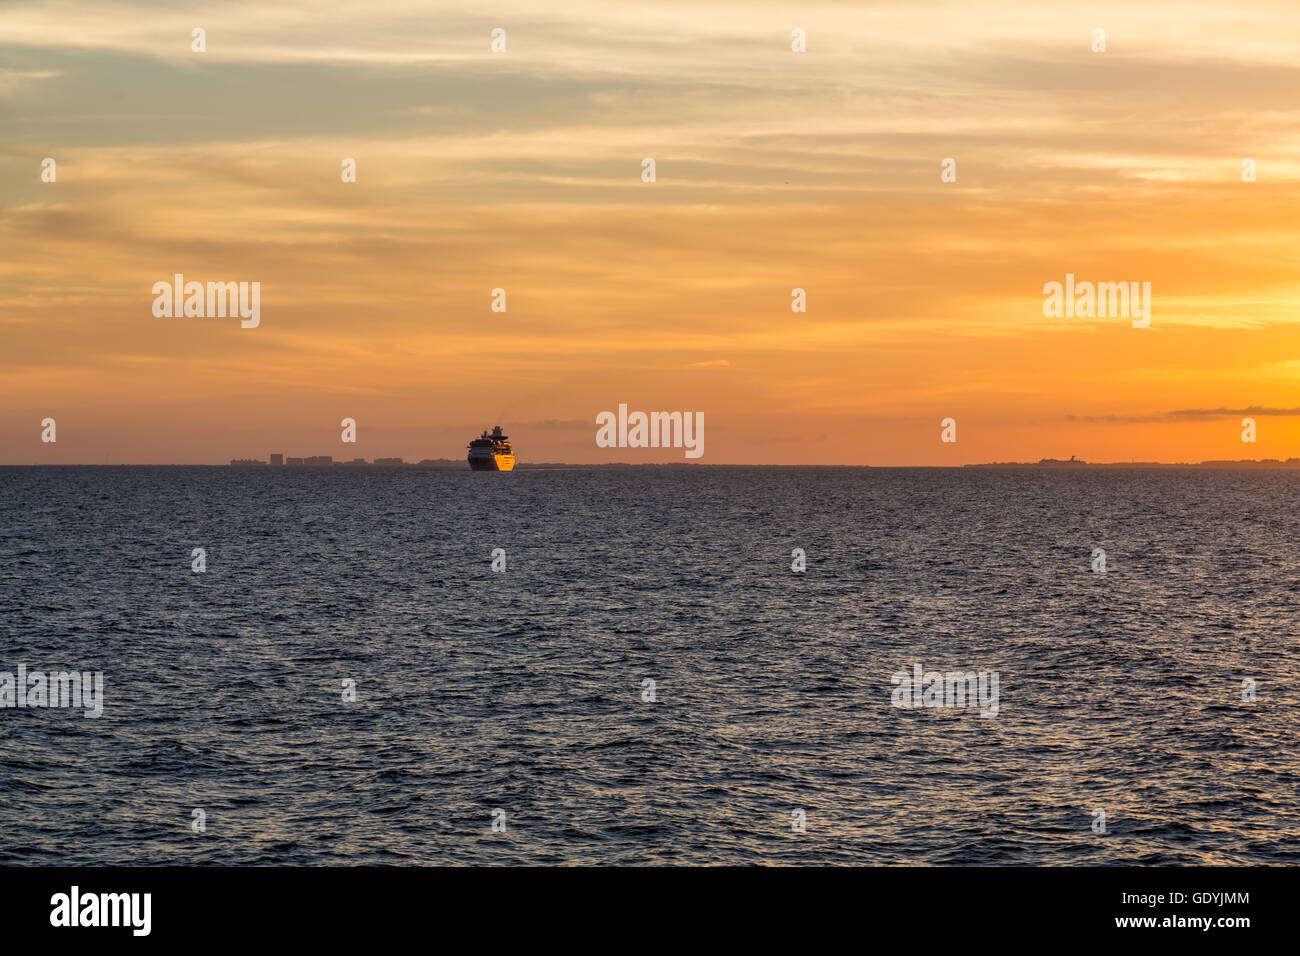 Miami Skyline At Sunset From The Sea With Freighter On Horizon